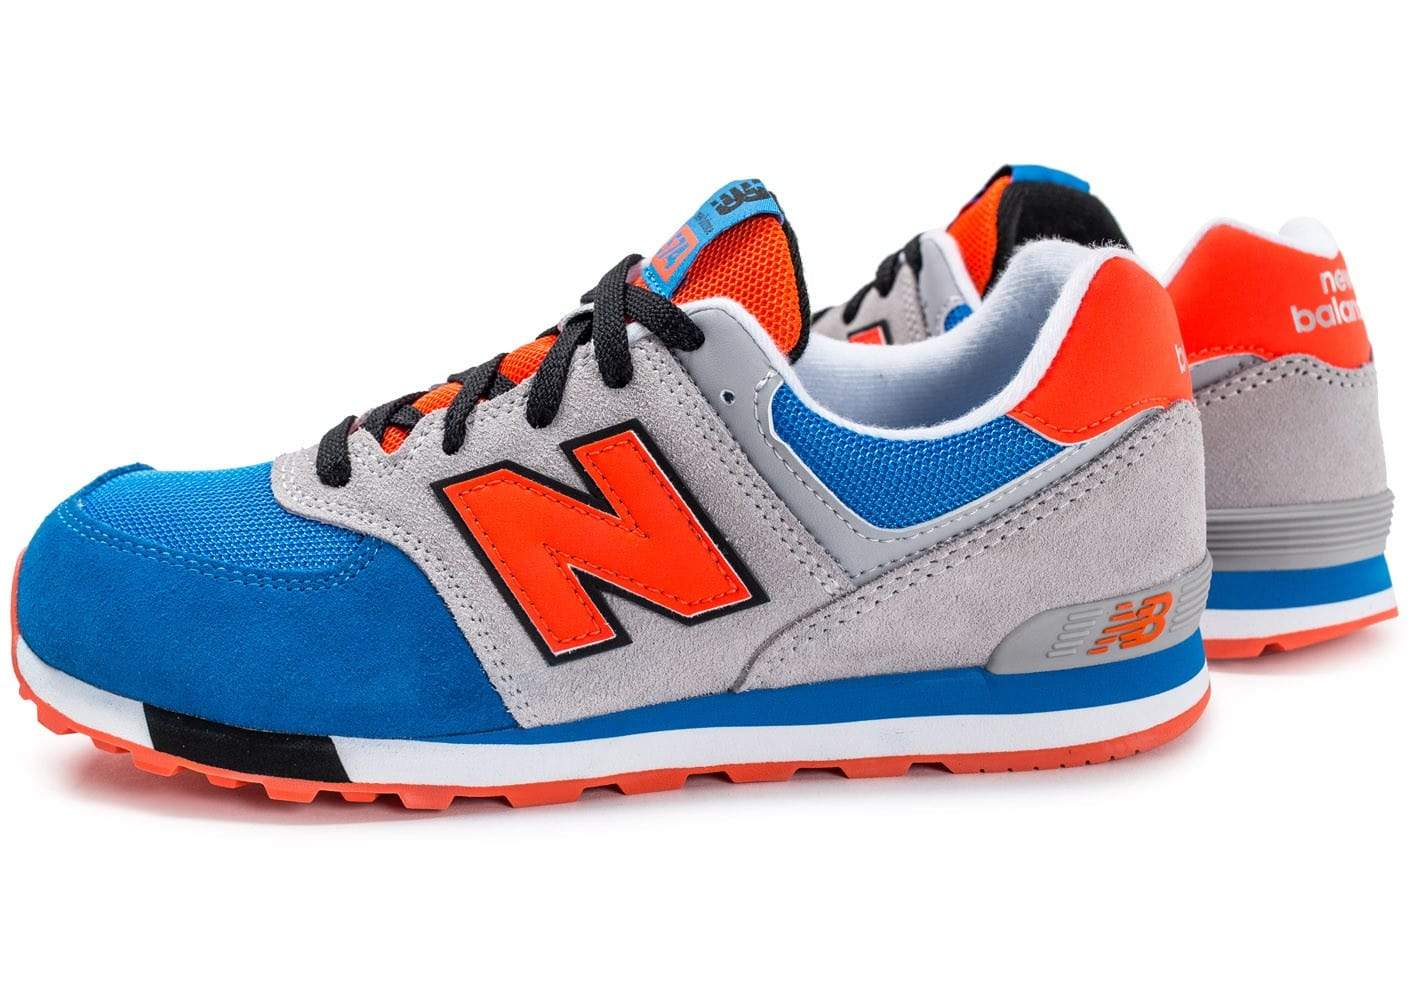 new balance kl574 grise orange et bleu chaussures toutes les baskets sold es chausport. Black Bedroom Furniture Sets. Home Design Ideas